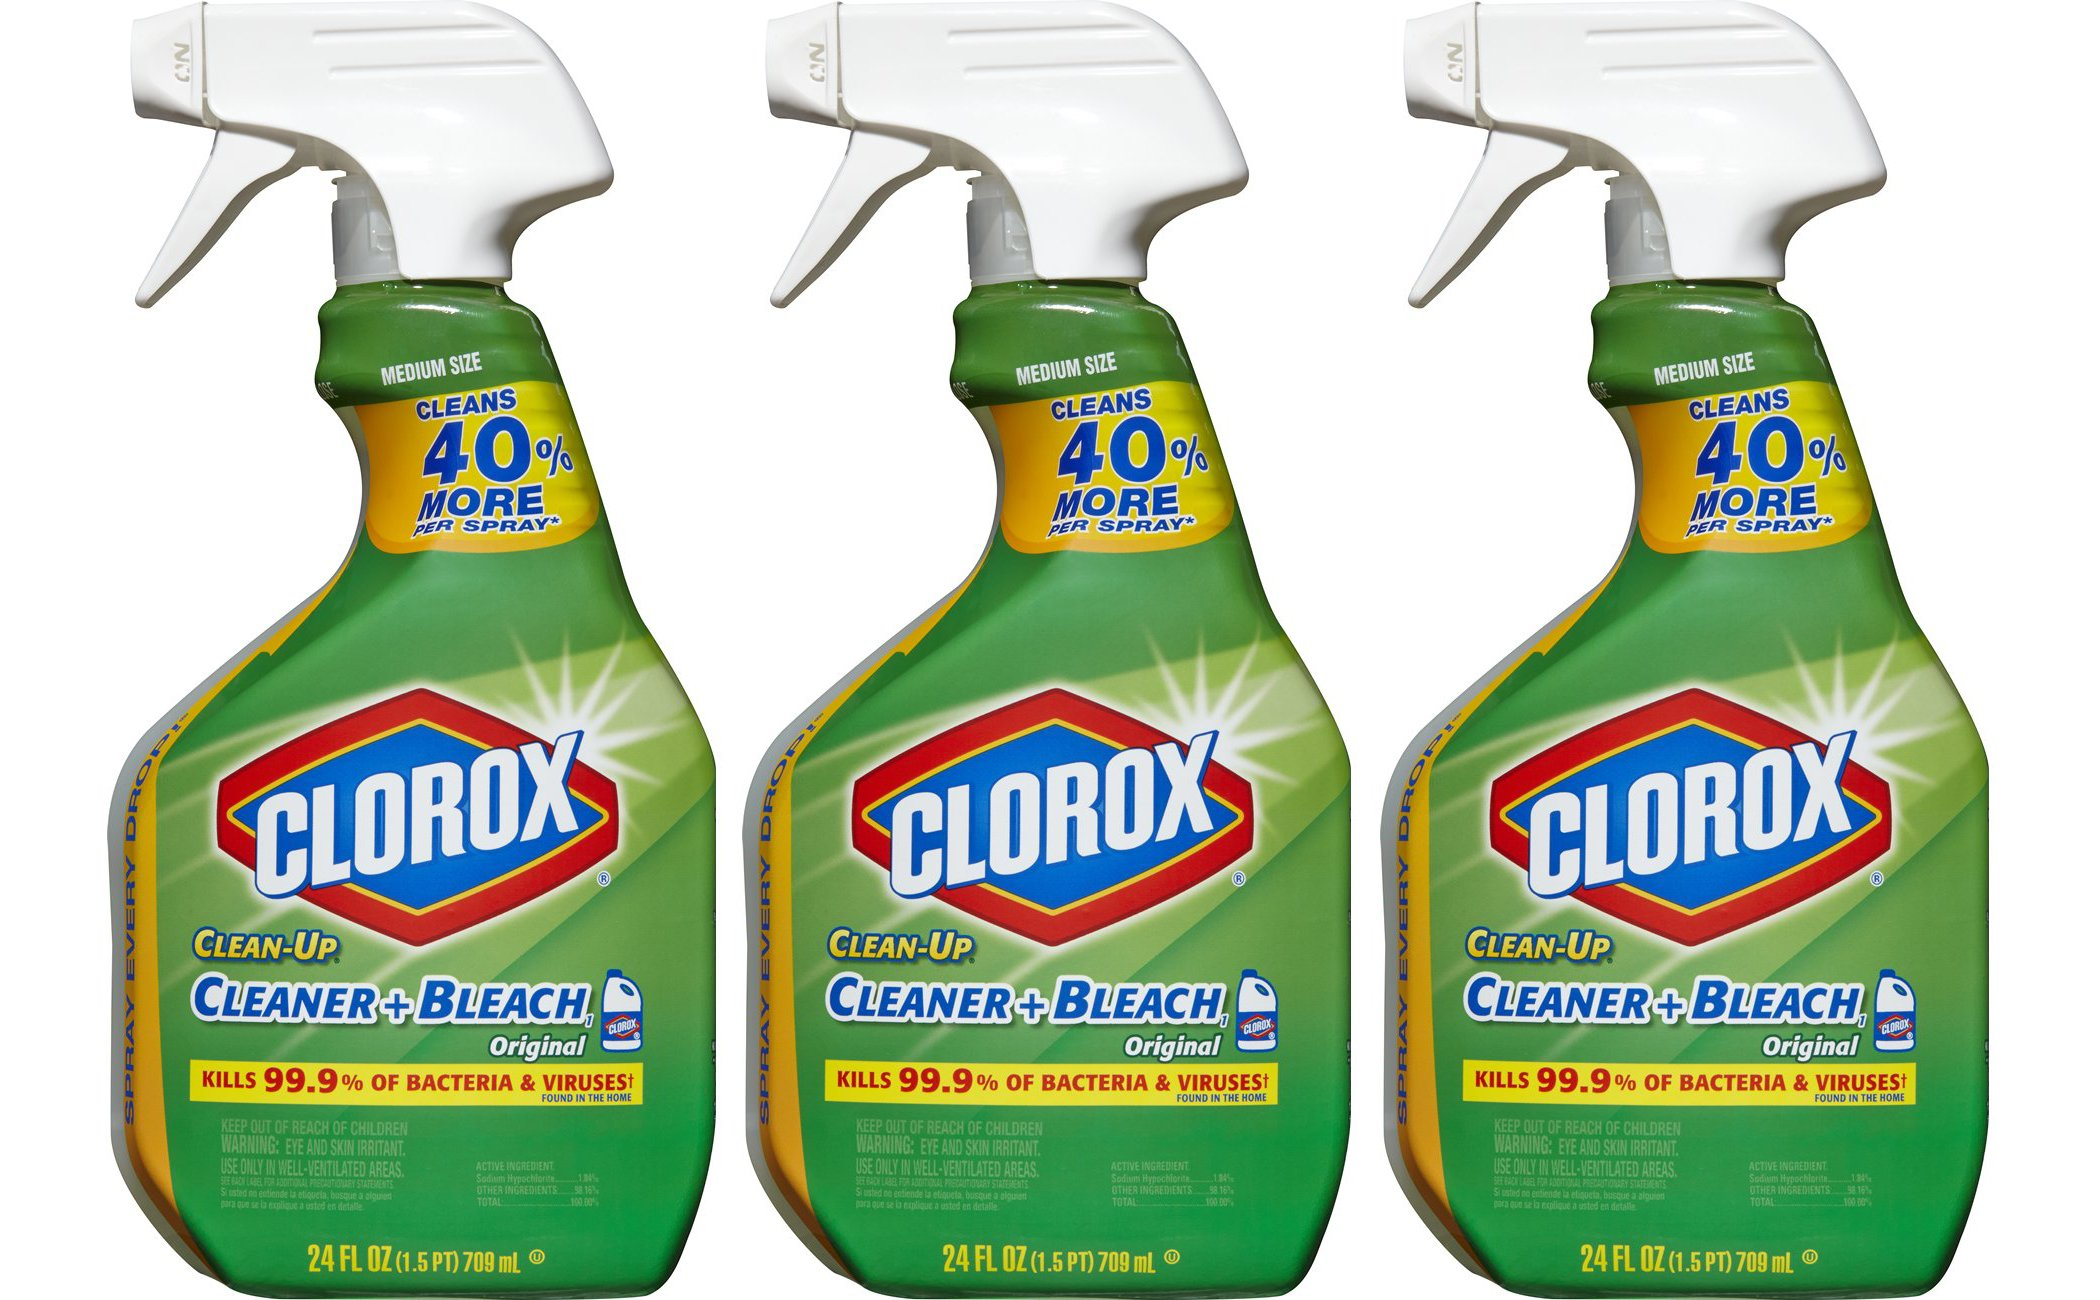 Clorox Clean-Up Bleach Cleaner Spray Value Pack Of 3 44600319124